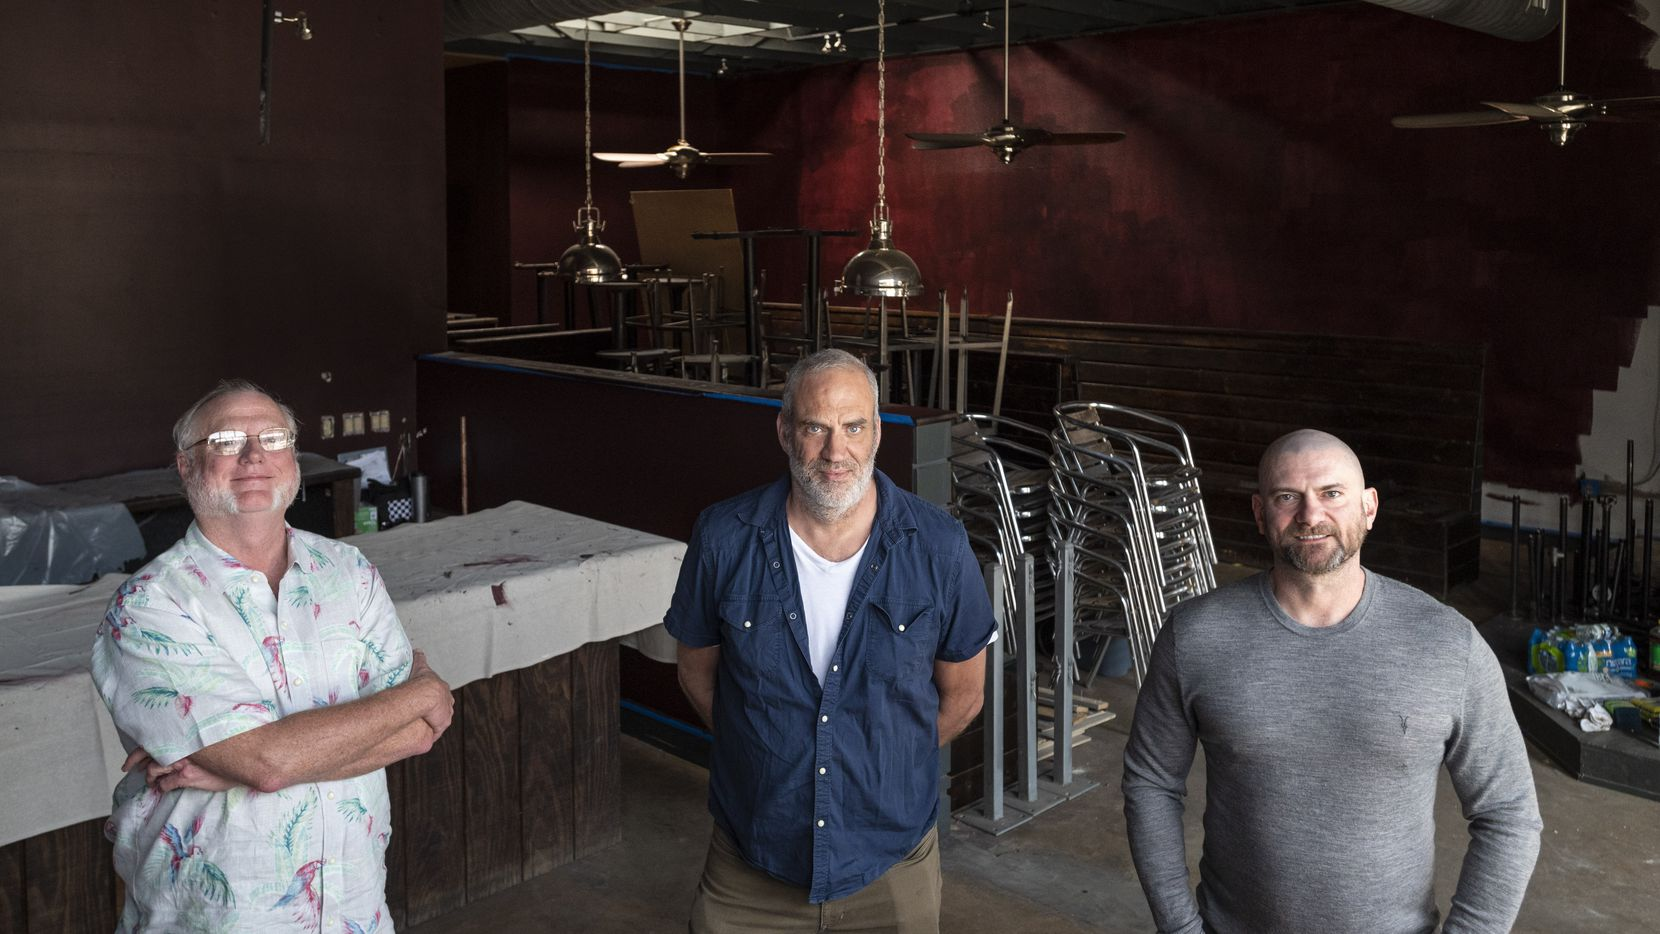 L-R: Cheapsteaks owners Ed Laster, John Jay Meyers and Jeff Biehler inside the old Stonedeck Pizza Pub where their new restaurant Cheap Steaks will eventually open, on Wednesday, March 24, 2021 in Dallas. Cheap Steaks will cater to steak fans and music lovers as they will have an indoor and outdoor stage at their restaurant-venue.